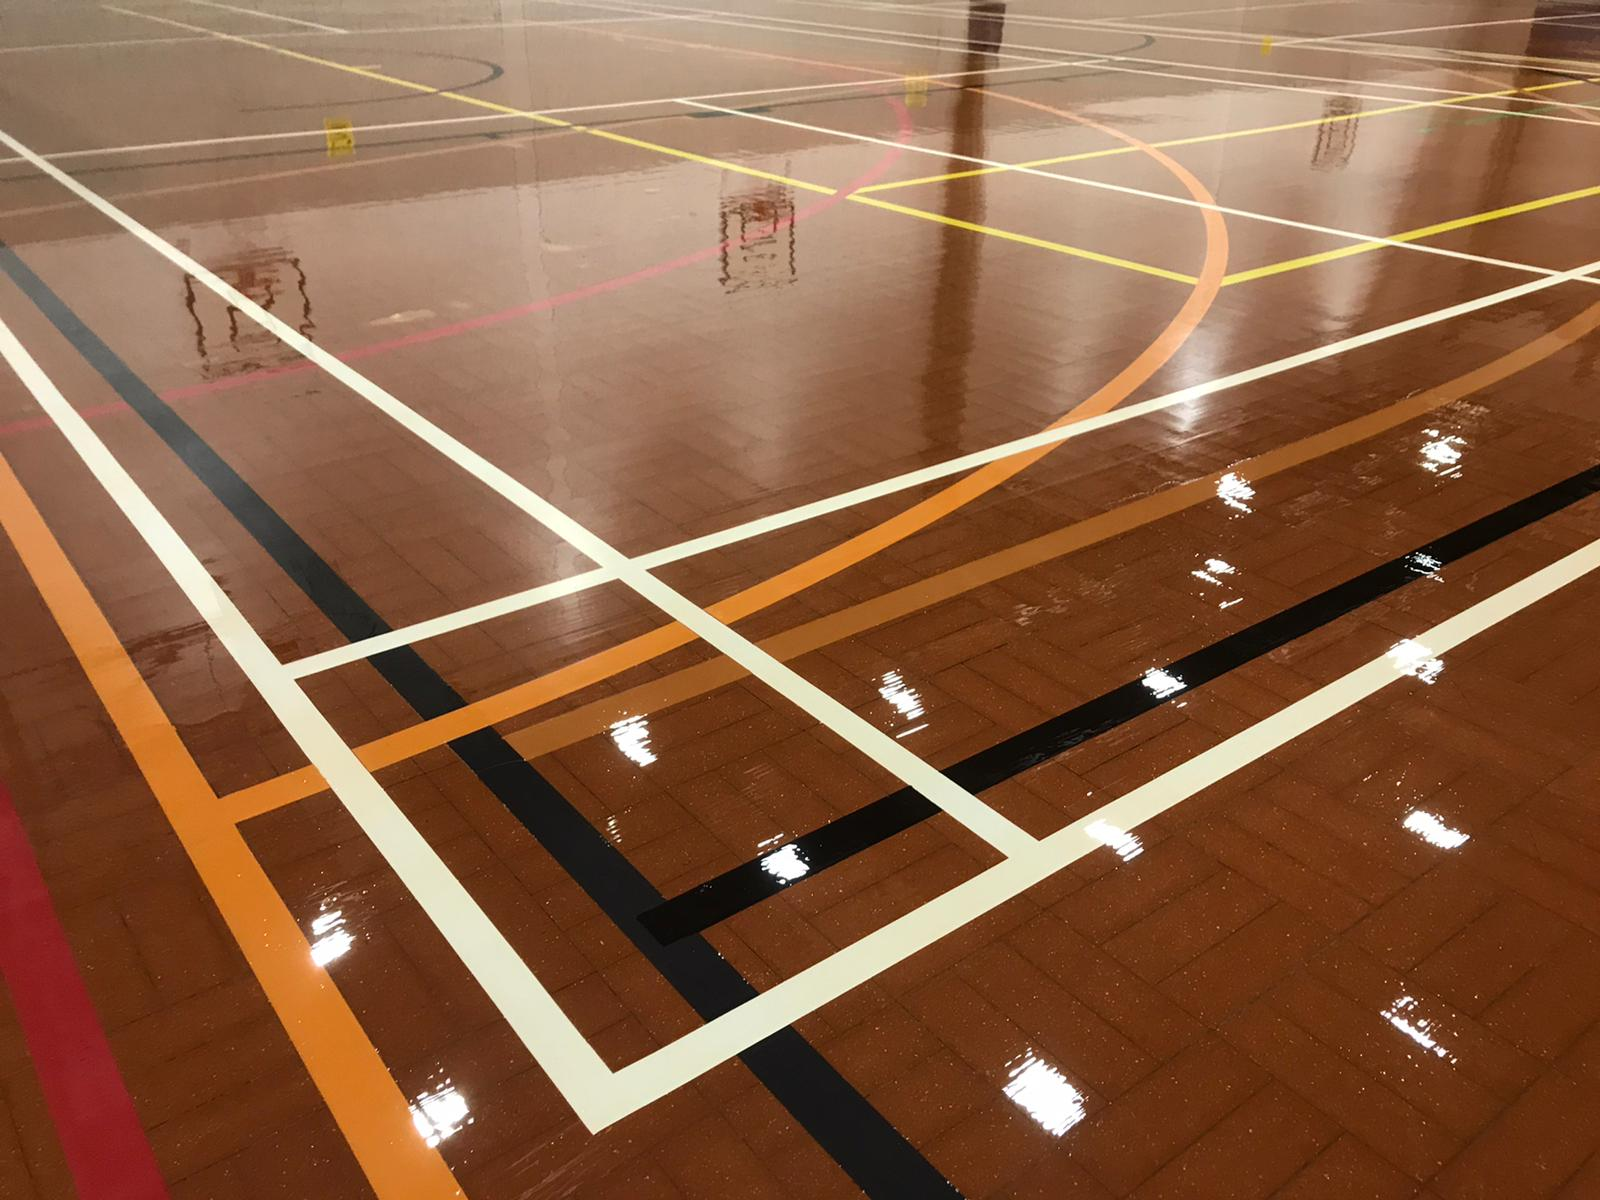 Granwood floor with new court markings